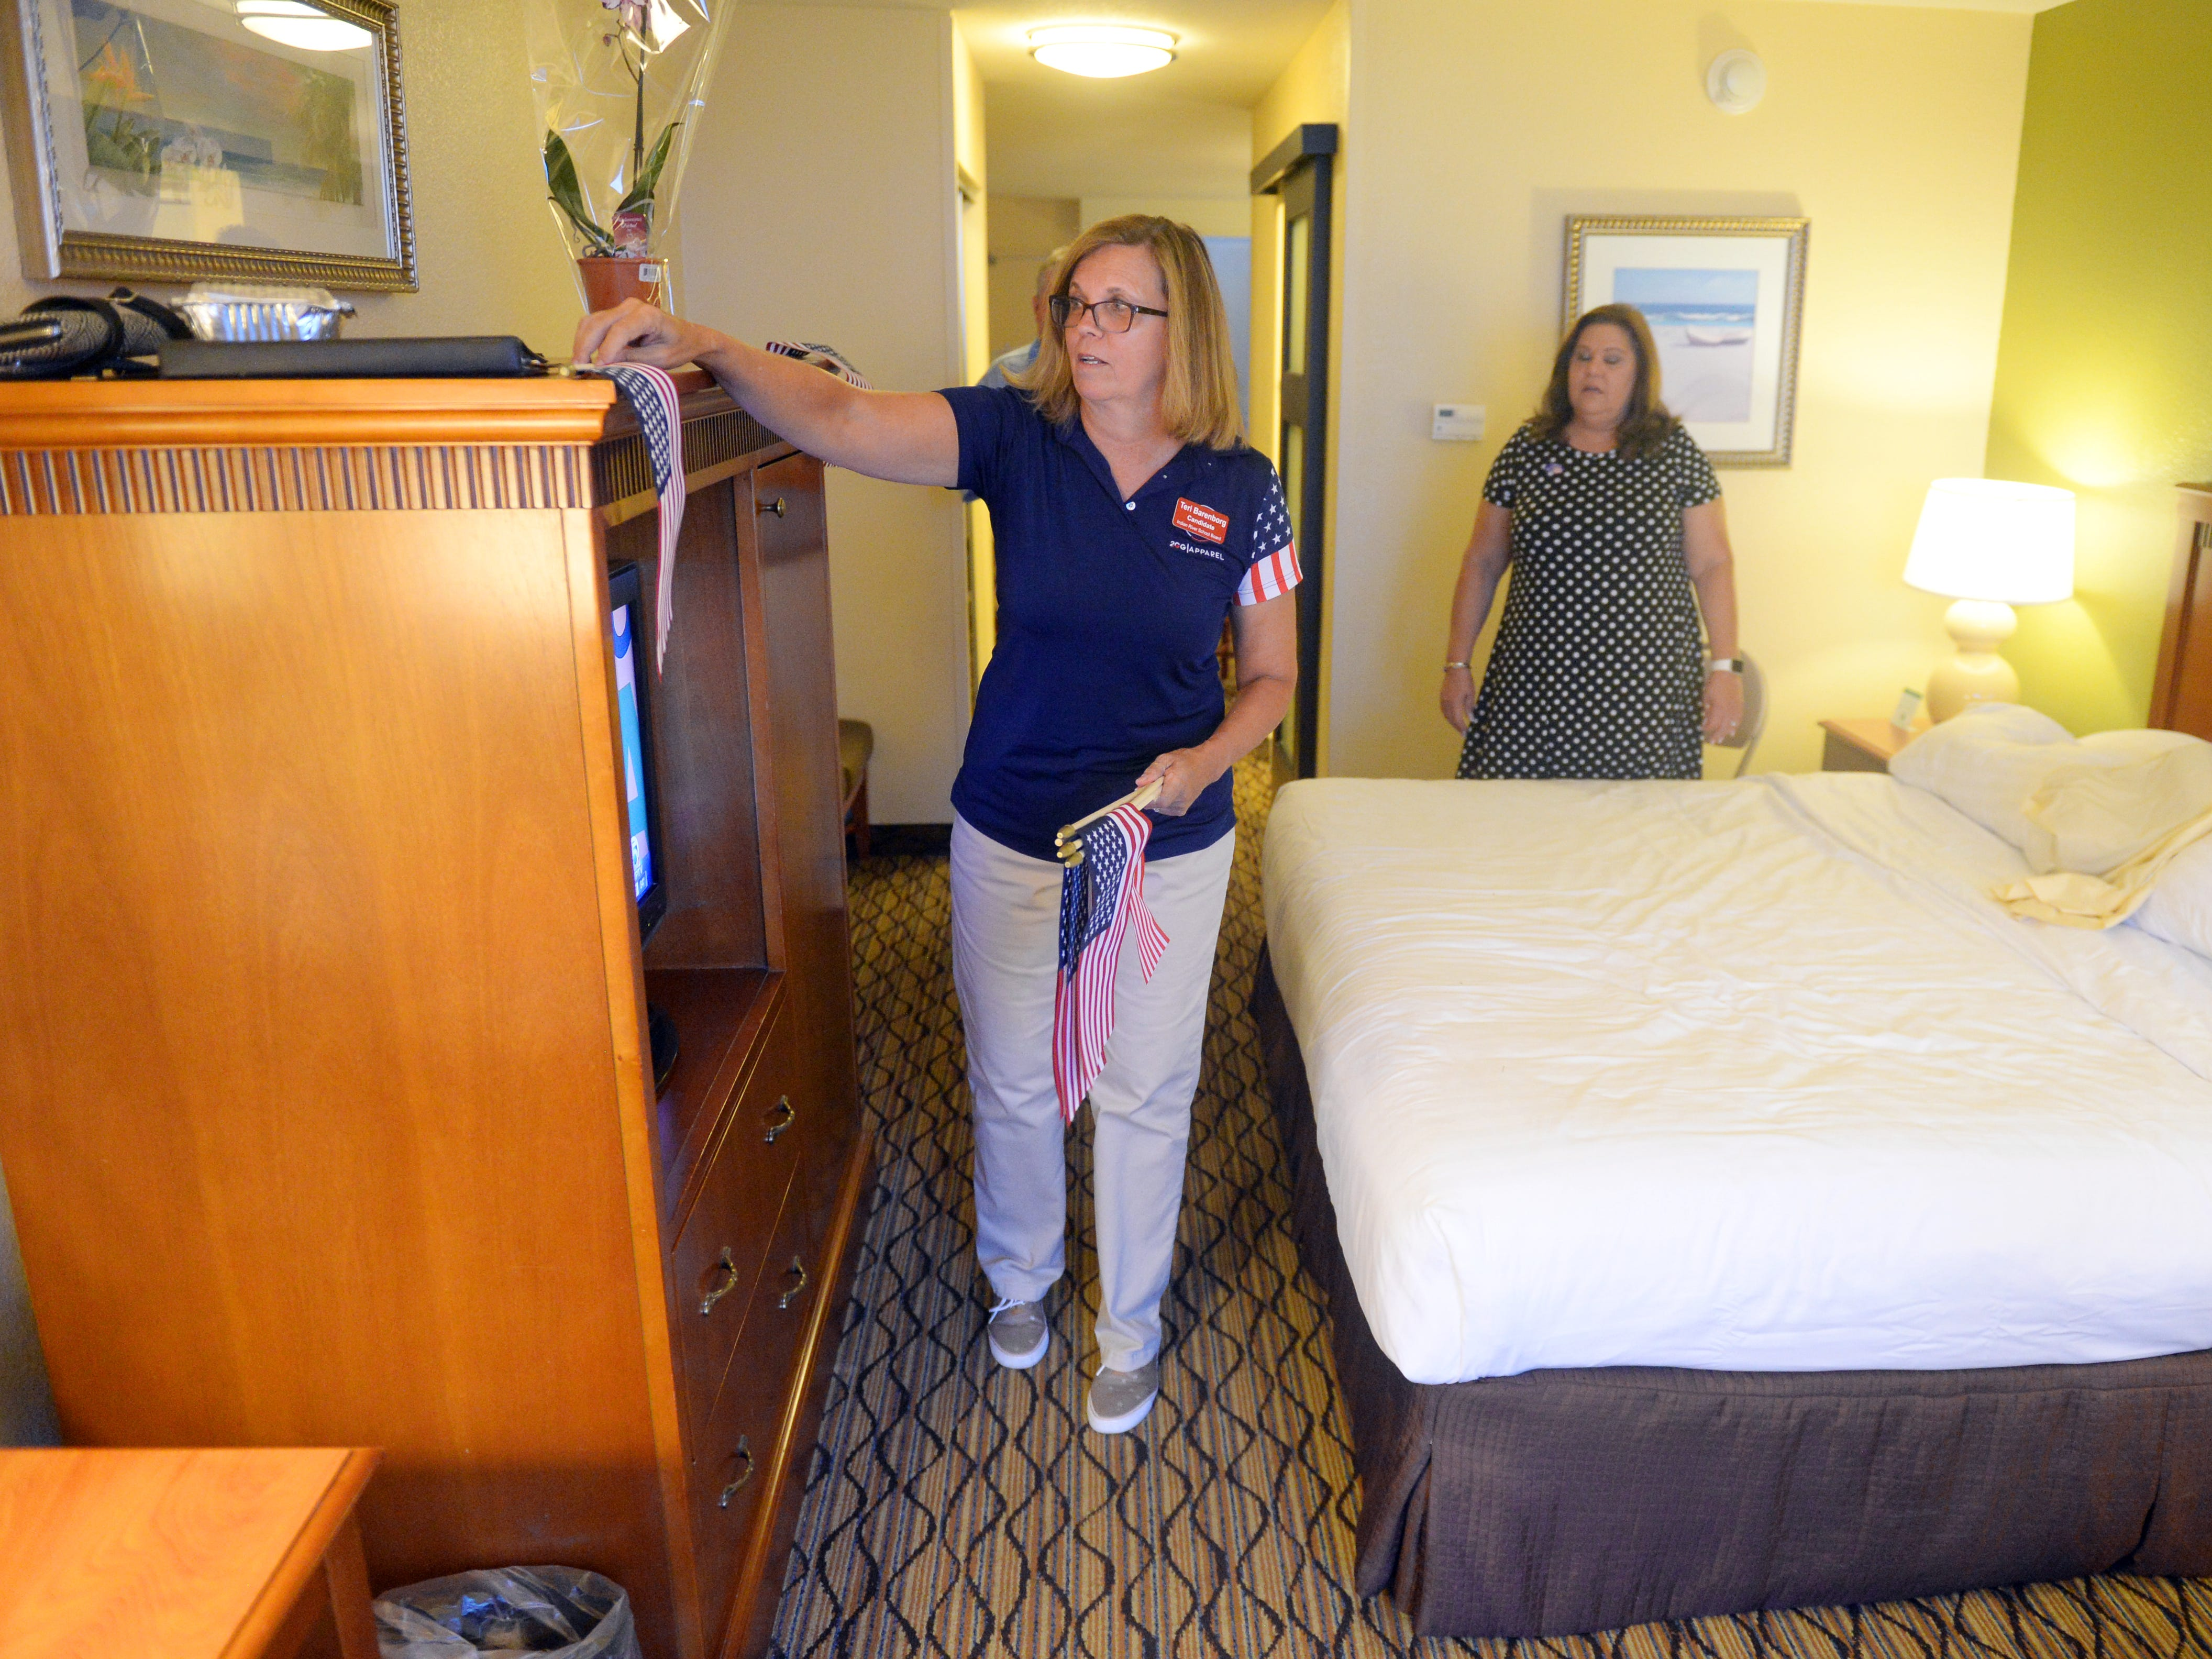 Indian River School Board District 4 candidate Teri Barenborg held an election watch party with friends and family at the Holiday Inn and Suites on Tuesday, Aug. 28, 2018 in Vero Beach. Barenborg will face Stacey Klim in a runoff election in November.